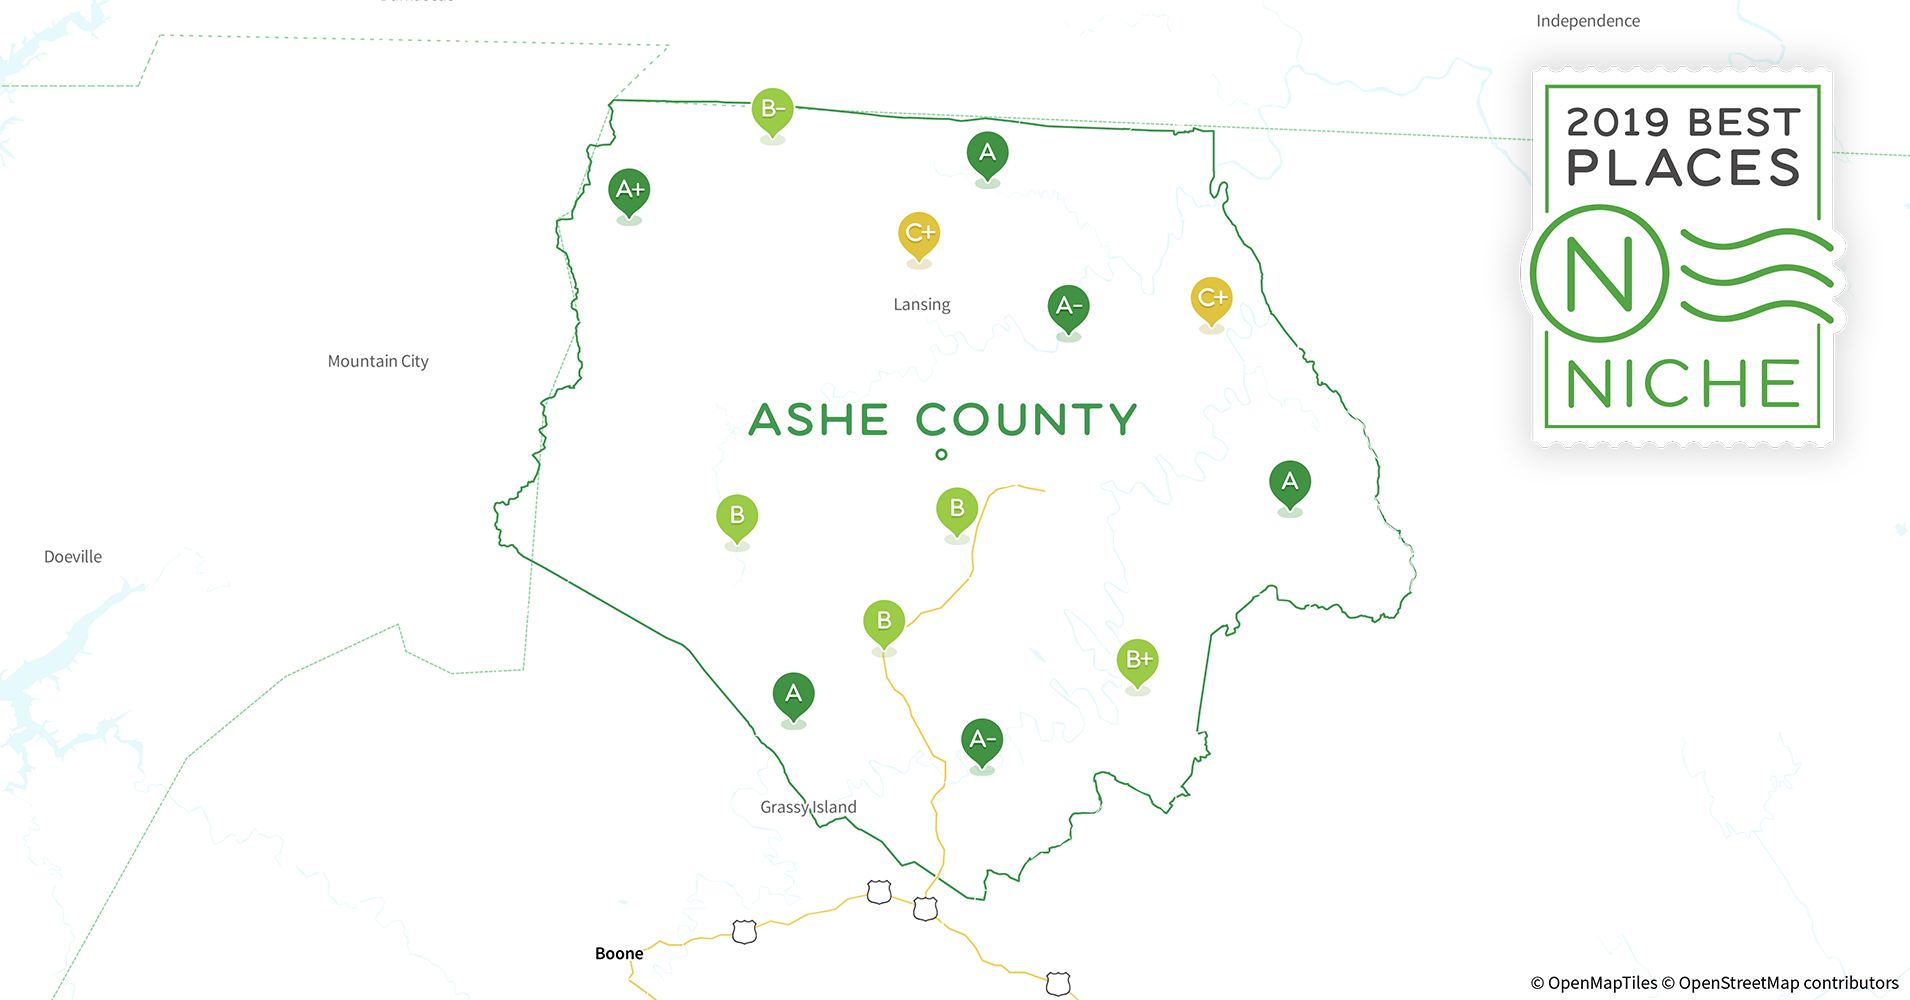 2019 Best Places To Live In Ashe County Nc Niche